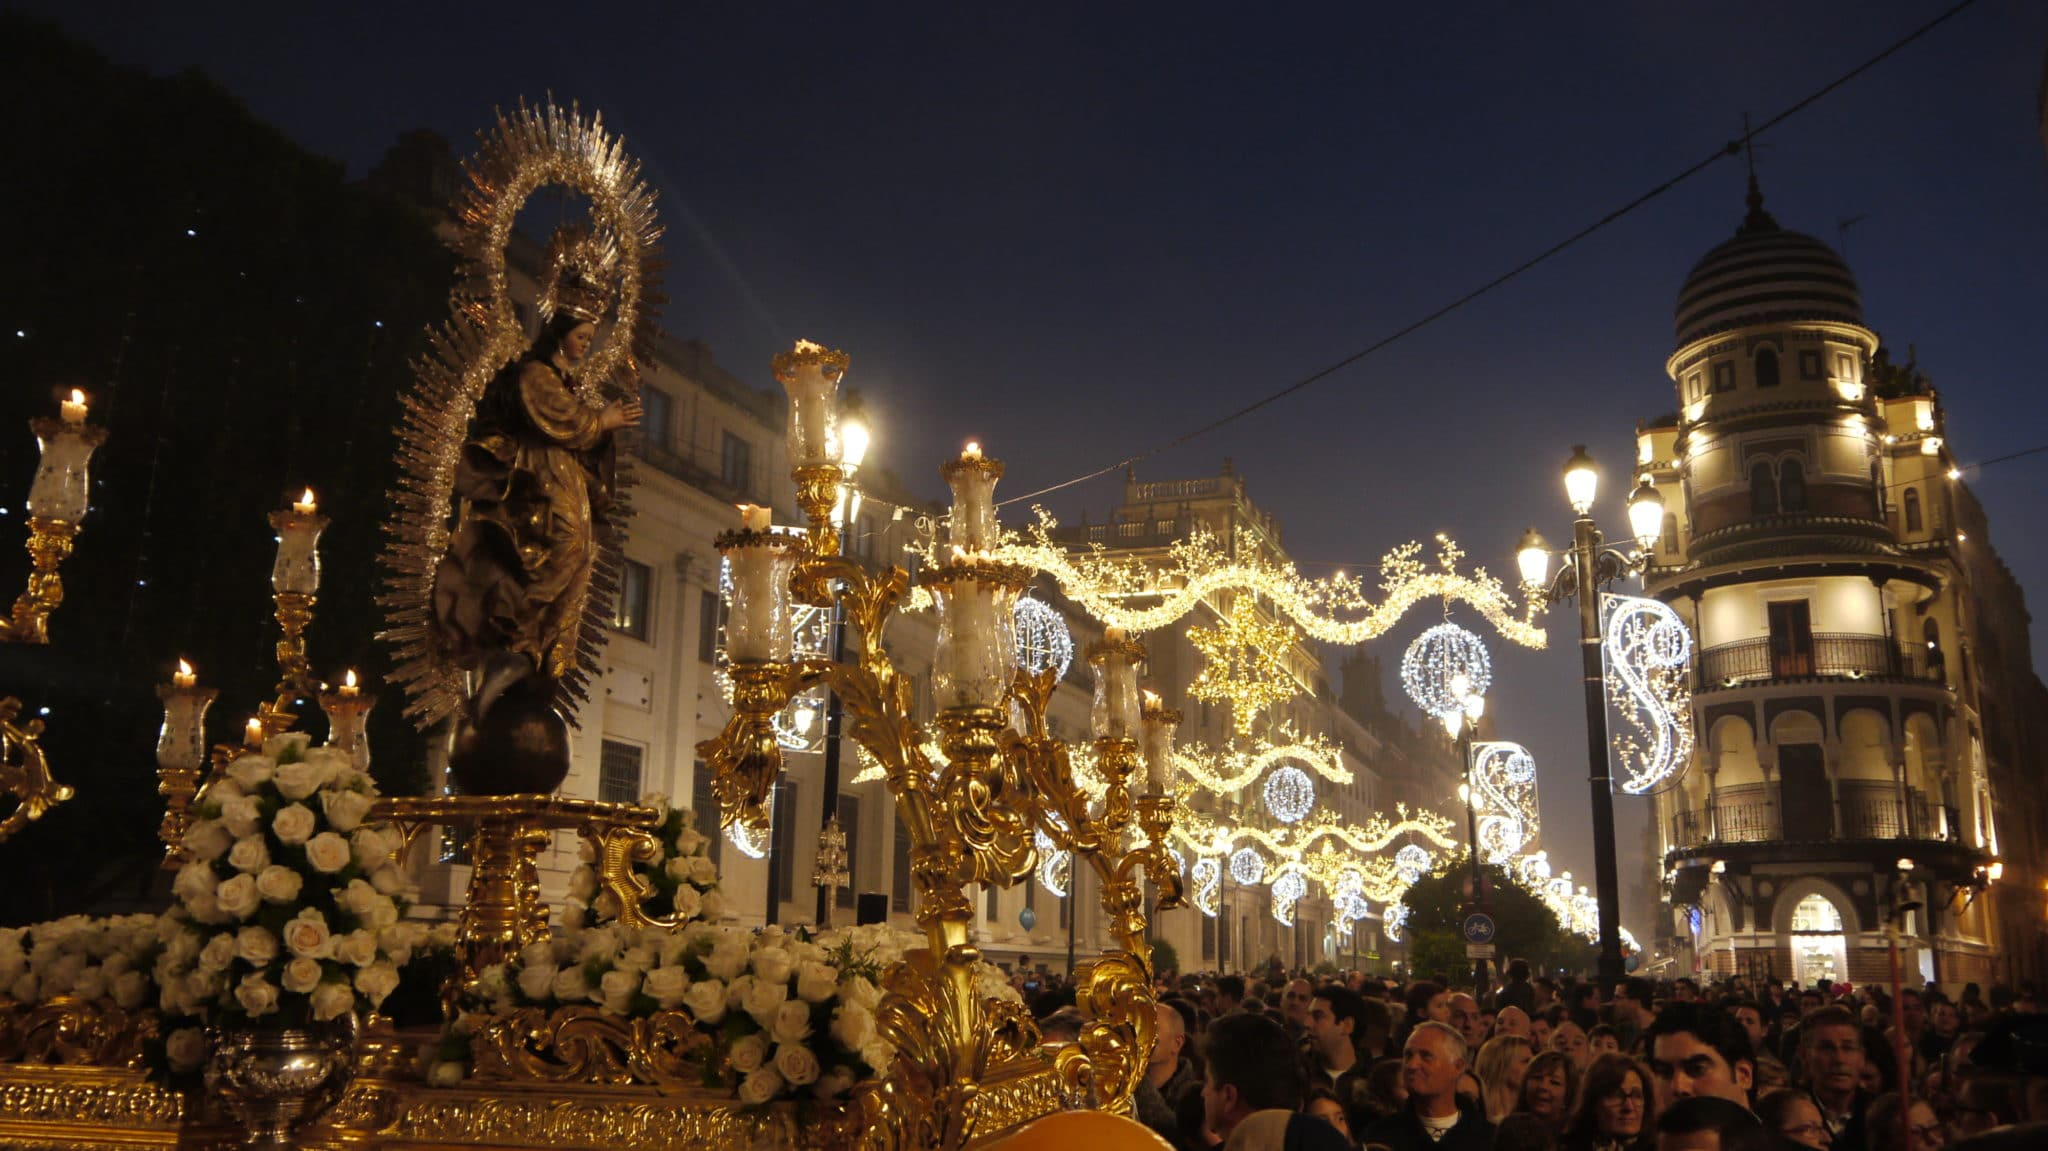 Christmas in Spain, Seville